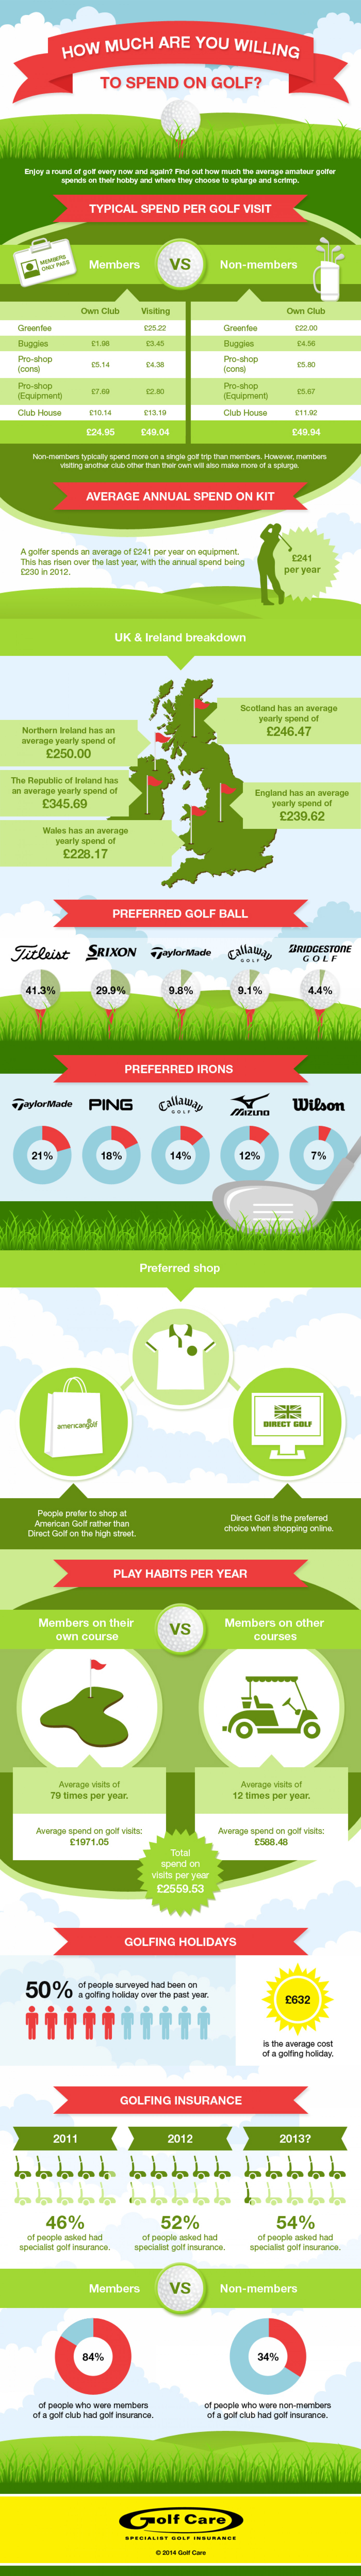 How Much Are You Willing to Spend on Golf? Infographic